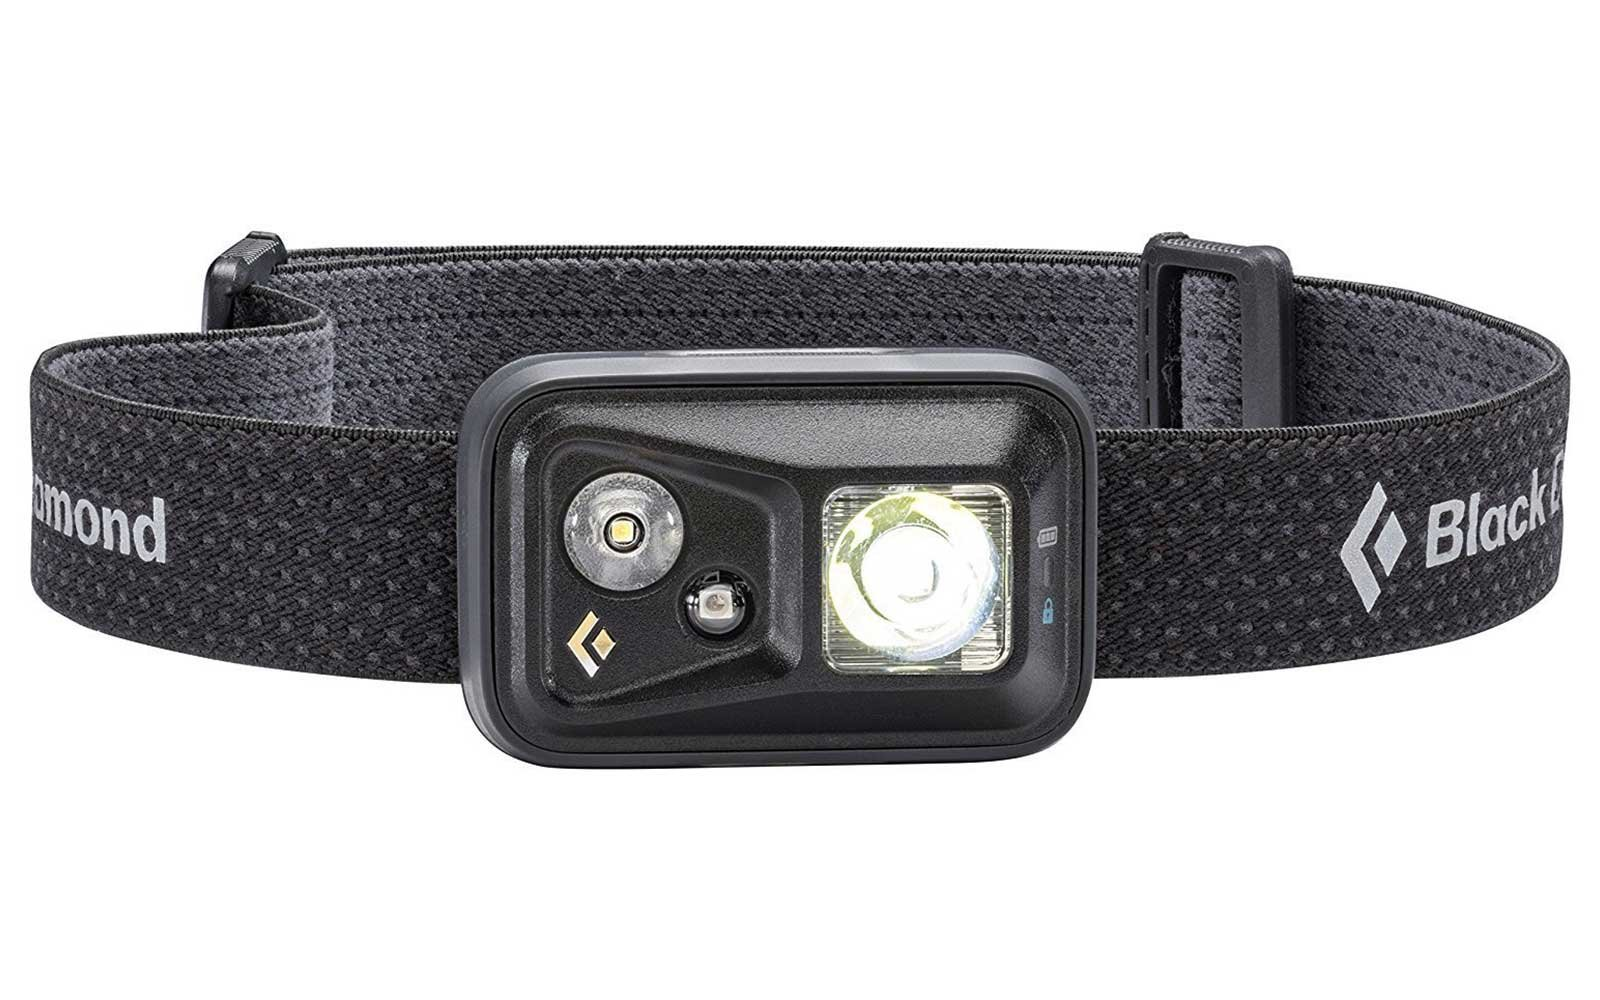 Wearable headlamp